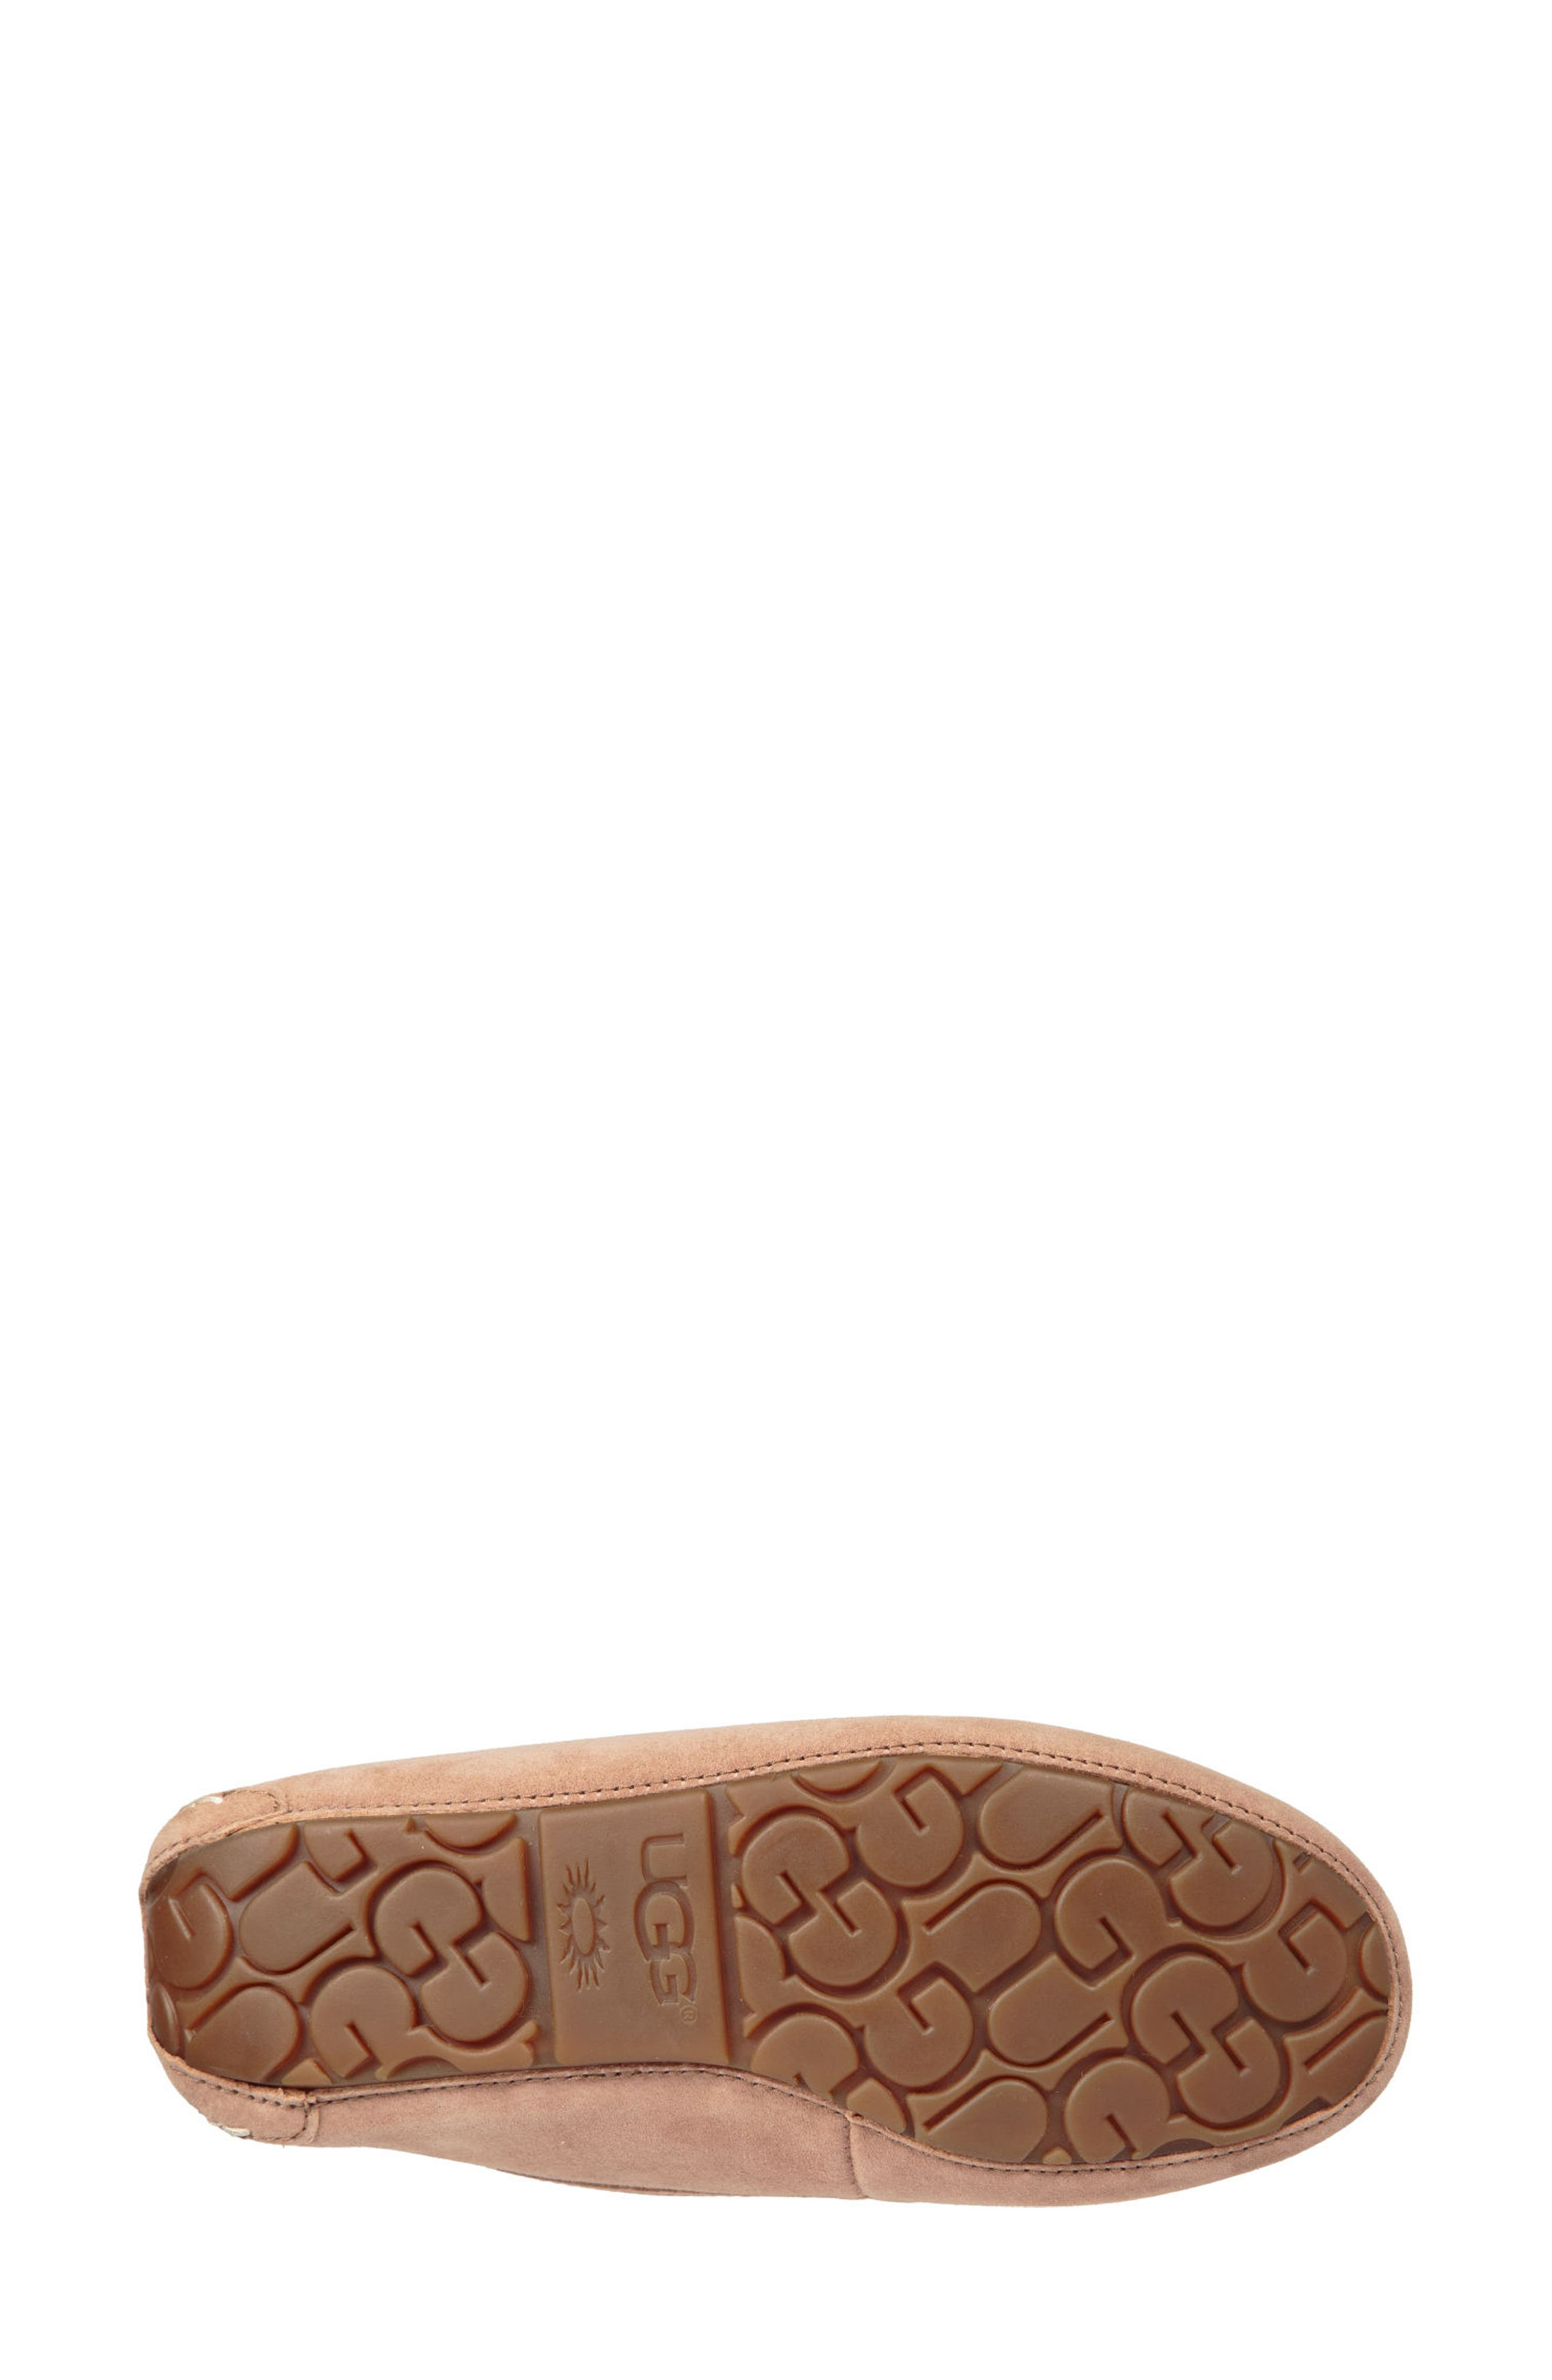 Ansley Water Resistant Slipper,                             Alternate thumbnail 5, color,                             Fawn Leather